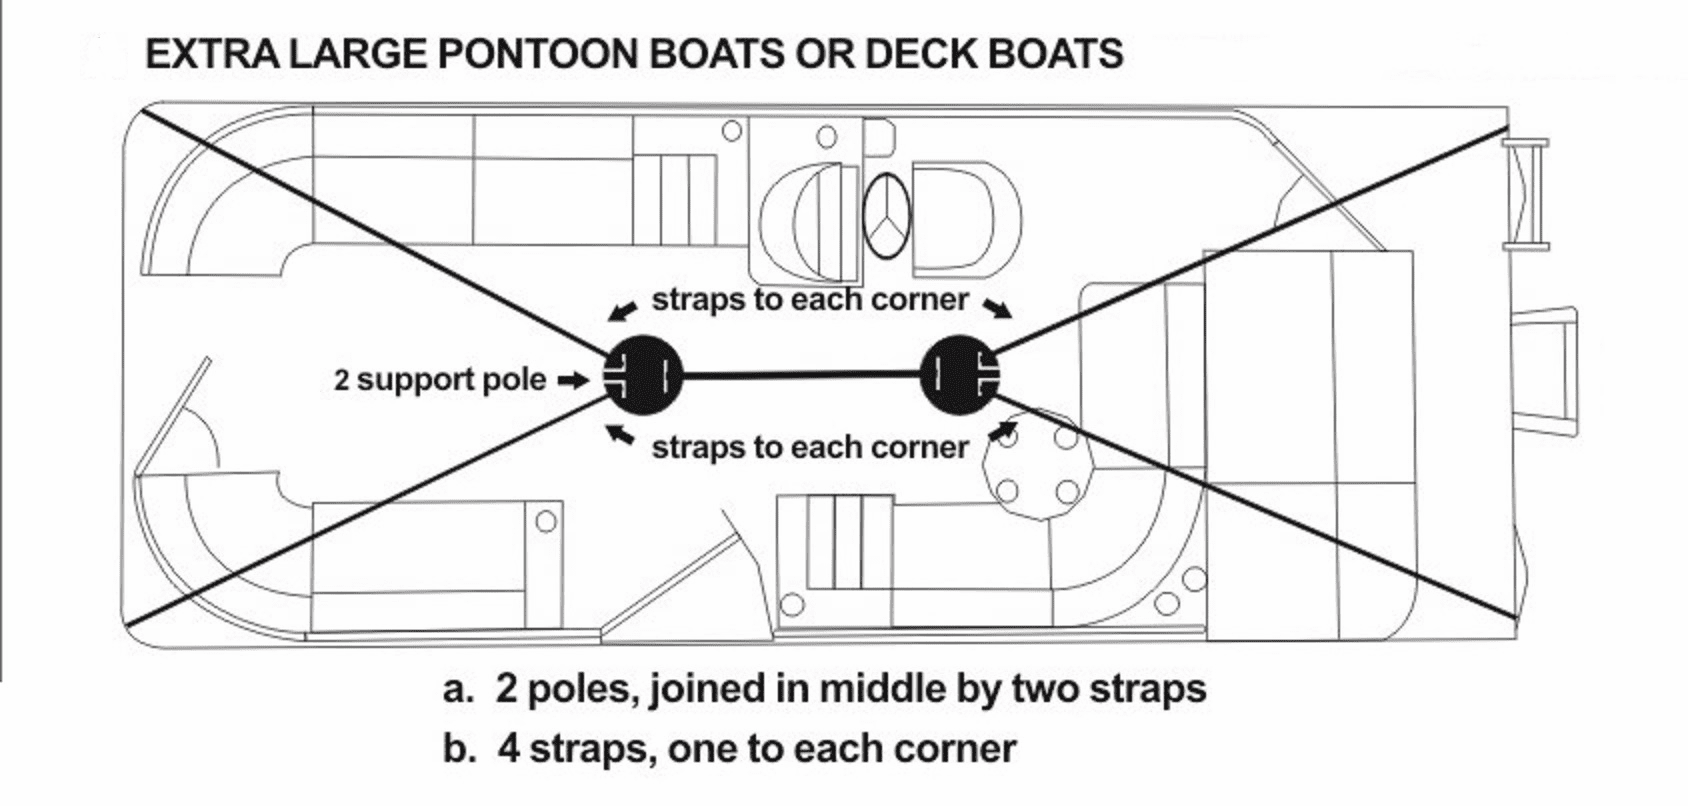 VORTEX DOUBLE PONTOON / DECK BOAT SUPPORT POLE SYSTEM